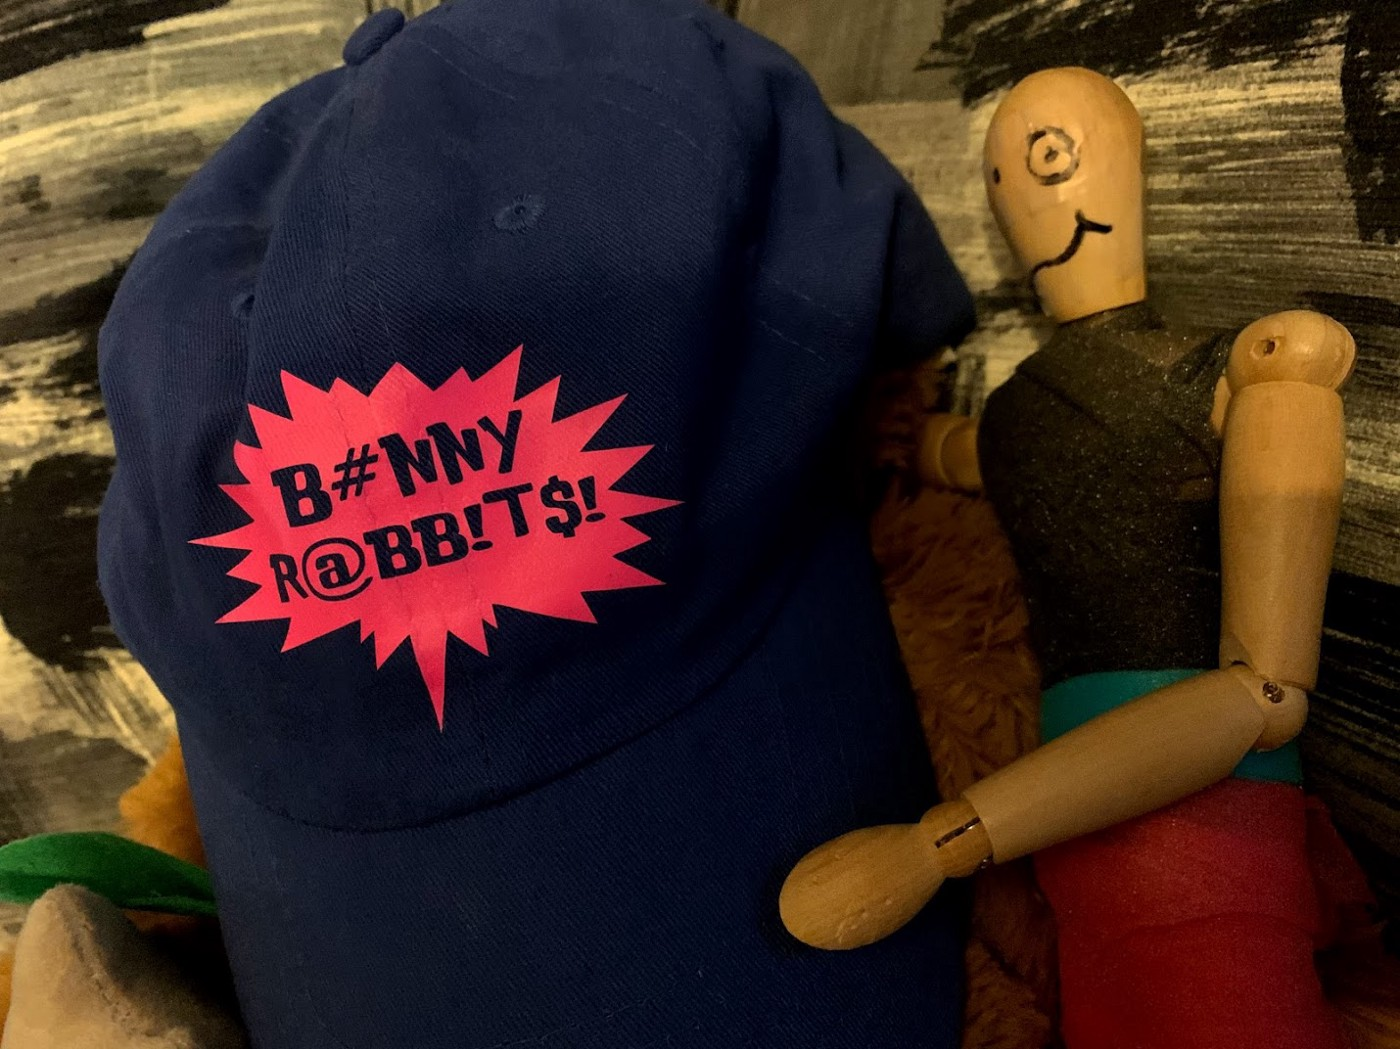 """A mannequin sits next to someone with a baseball cap that reads """"bunny rabbits!"""""""